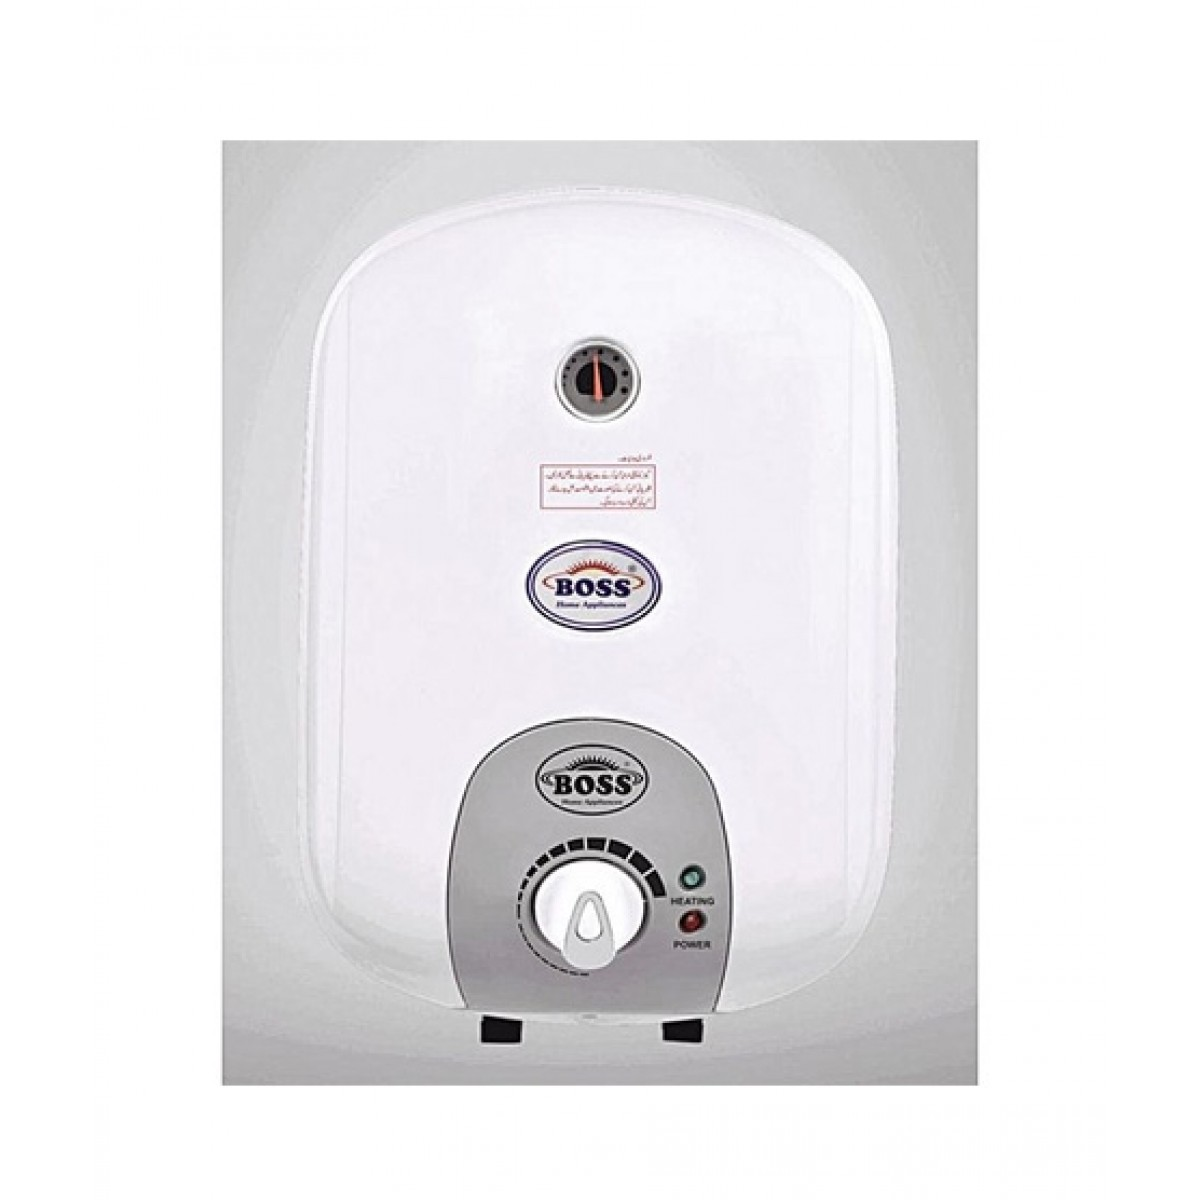 Boss Electric Instant Geyser Price In Pakistan Buy Boss Electric Instant Geyser Supreme White Ke Sie 15 Cl Ishopping Pk